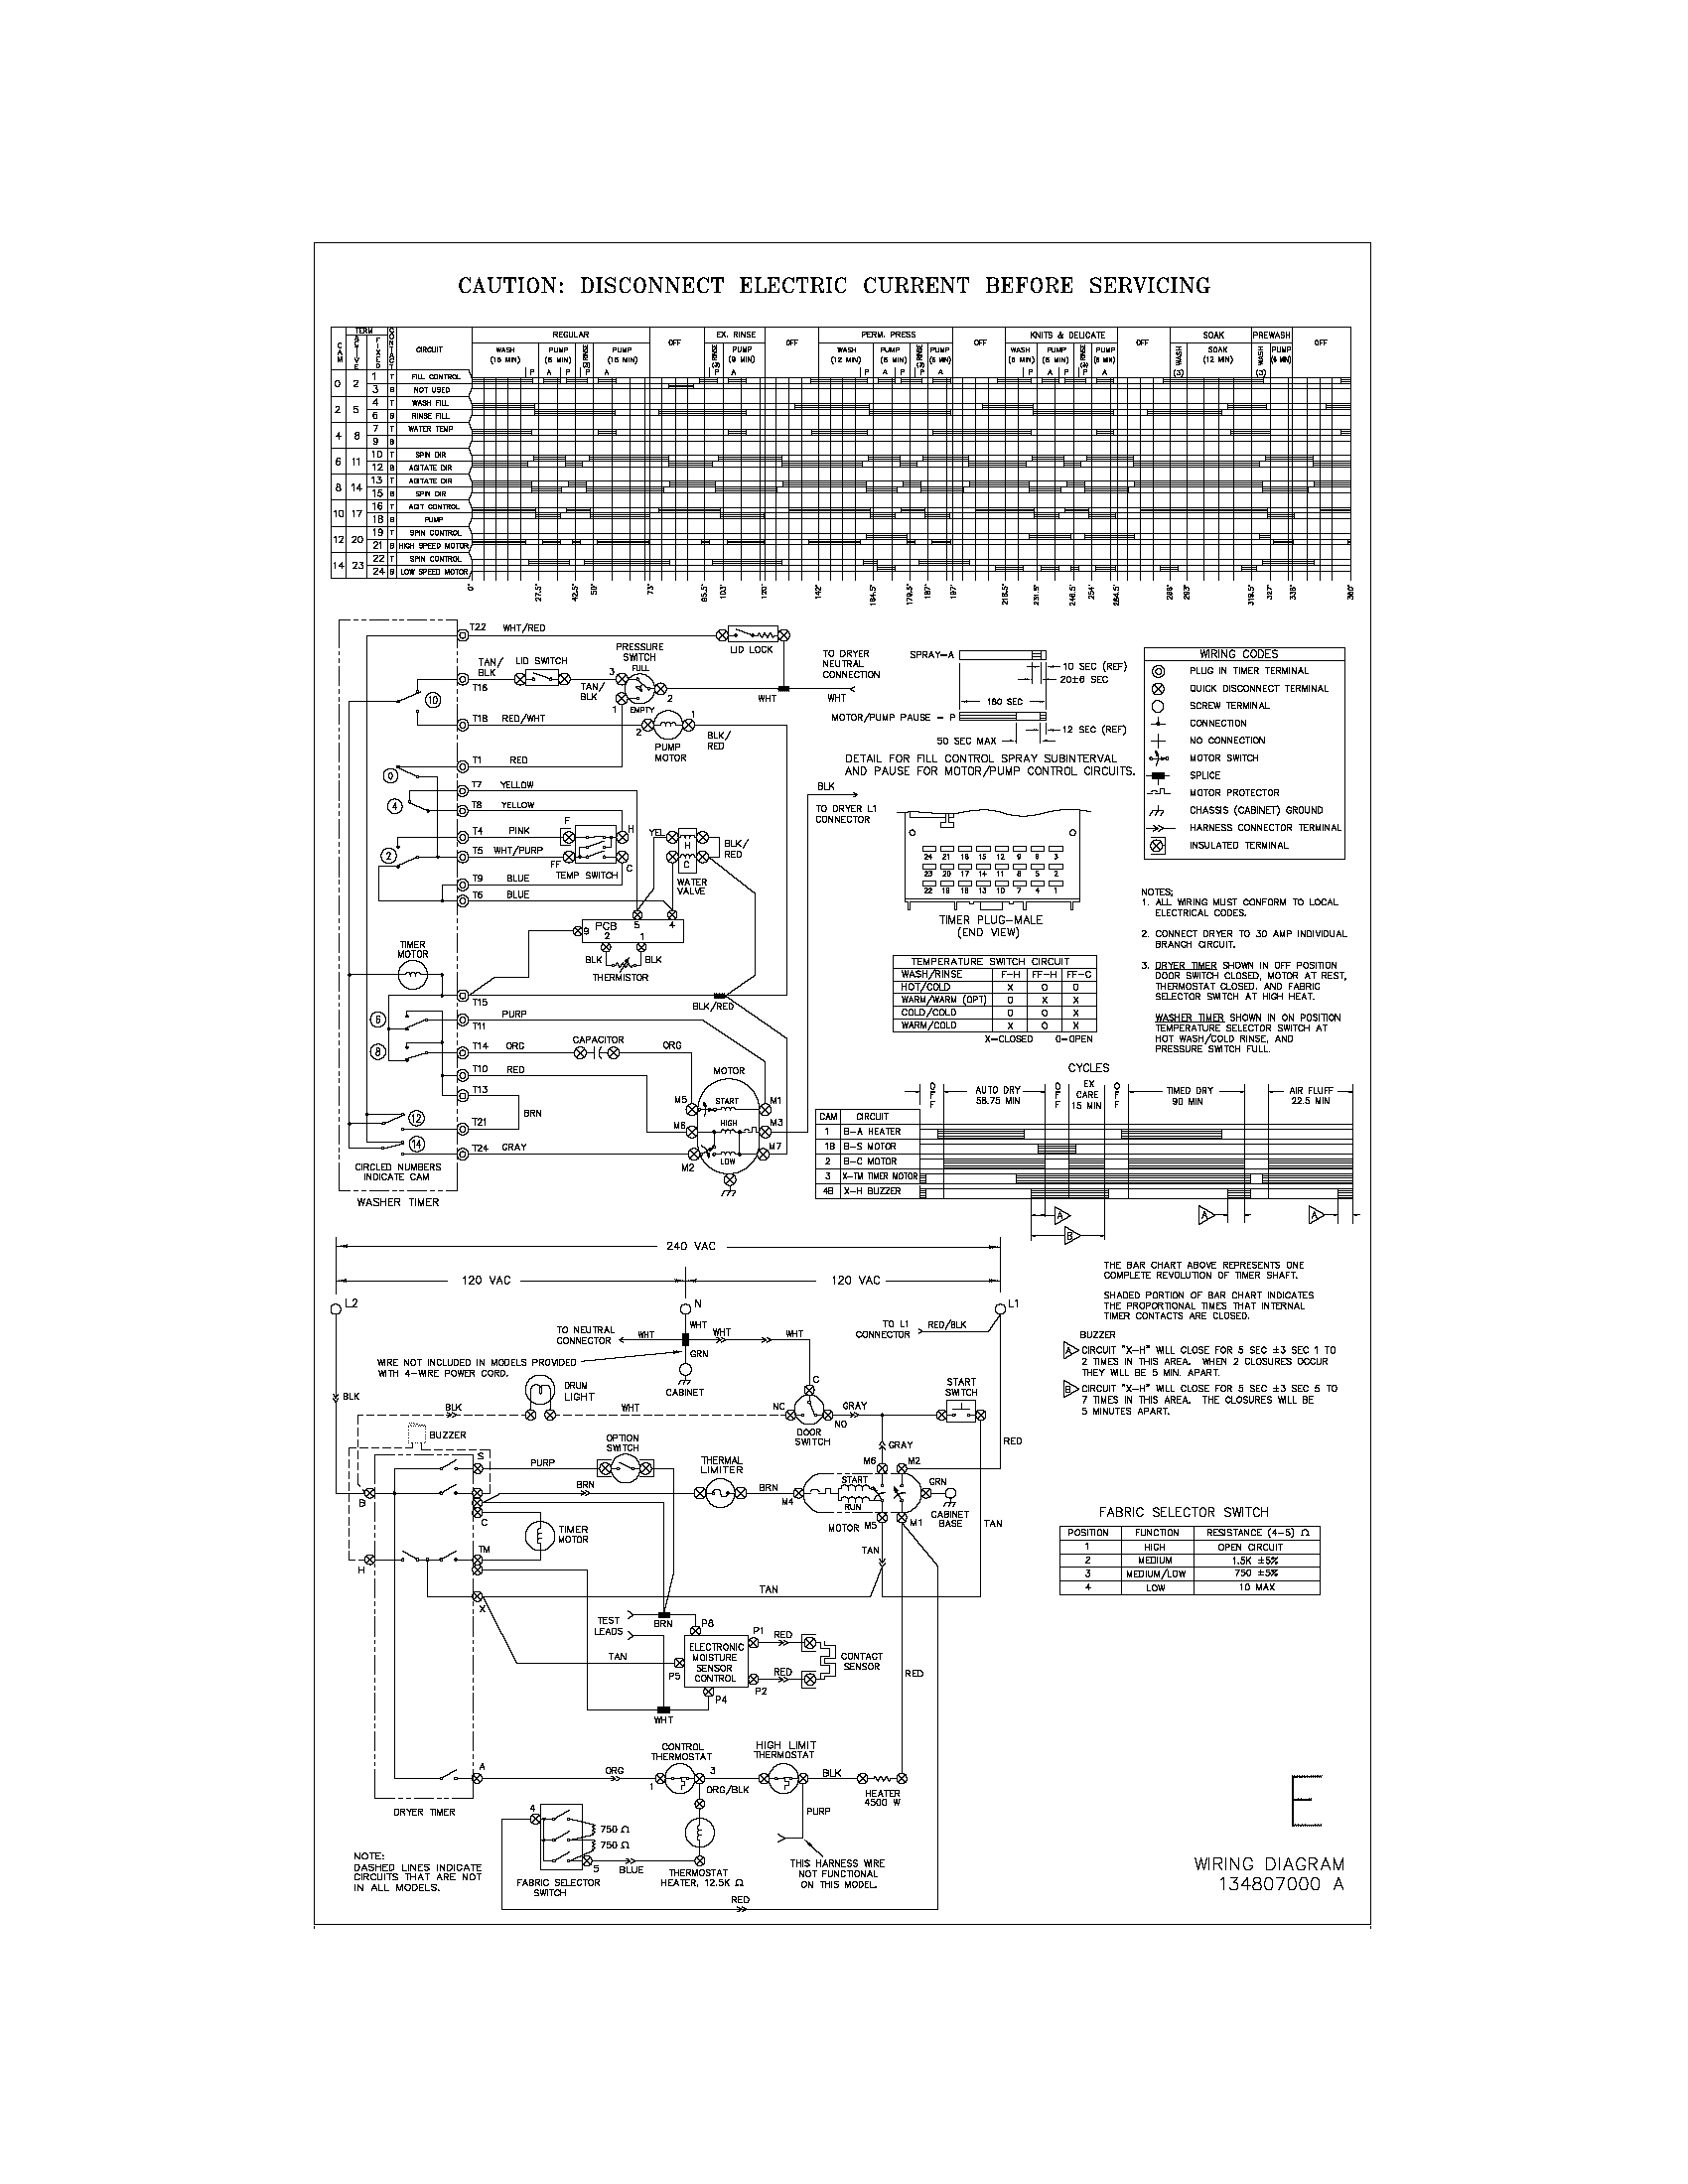 Kenmore Dryer Wiring Diagrams : kenmore, dryer, wiring, diagrams, Model, 41797912700, Parts.Sears.com, Kenmore,, Washer, Dryer, Combo,, Laundry, Center